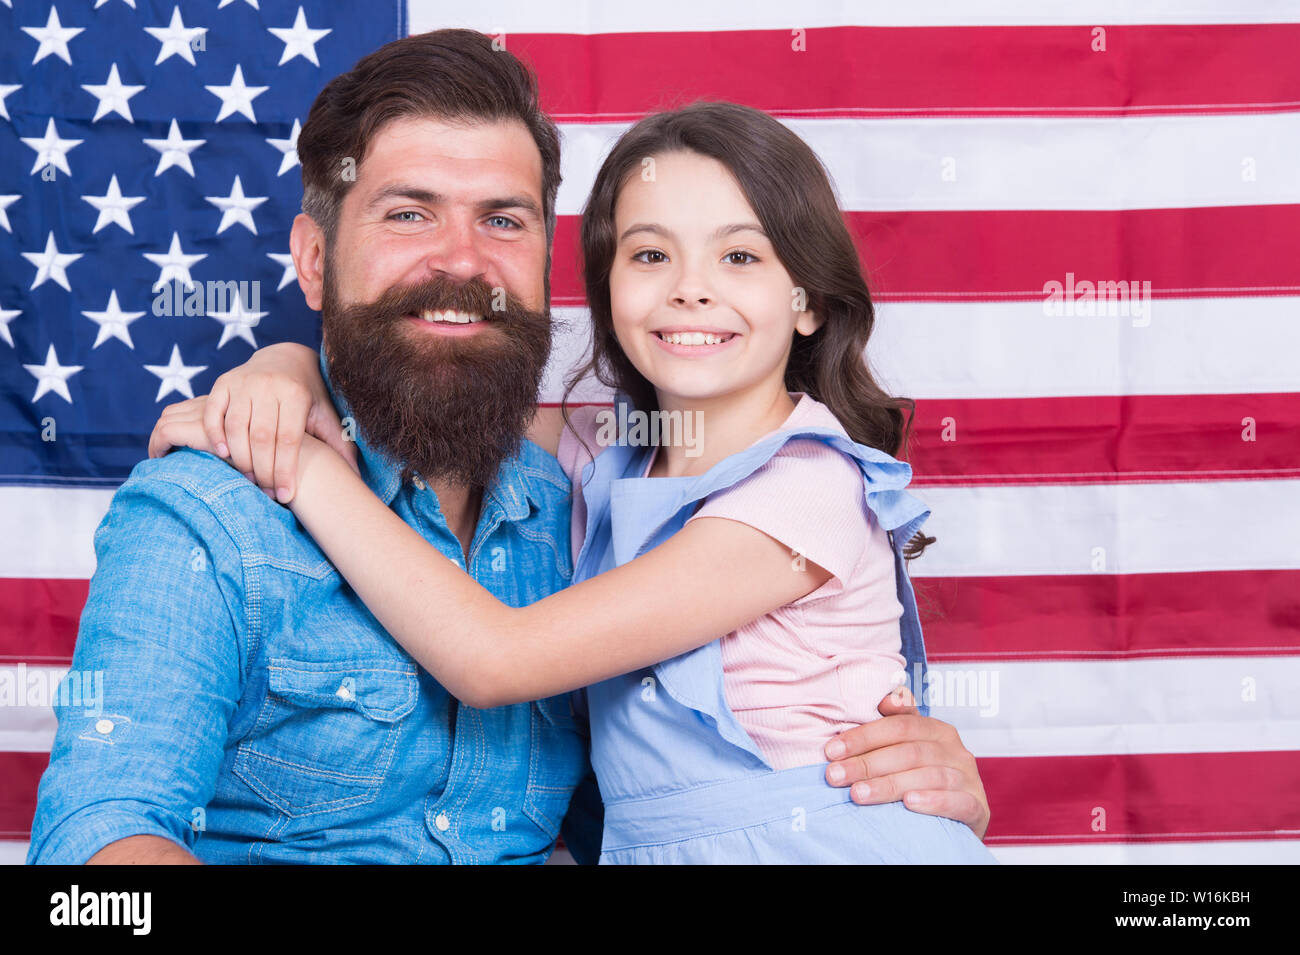 Father american bearded hipster and cute little daughter with USA flag. Freedom fundamental right. Independence is happiness. Independence day holiday. How do americans celebrate independence day. - Stock Image